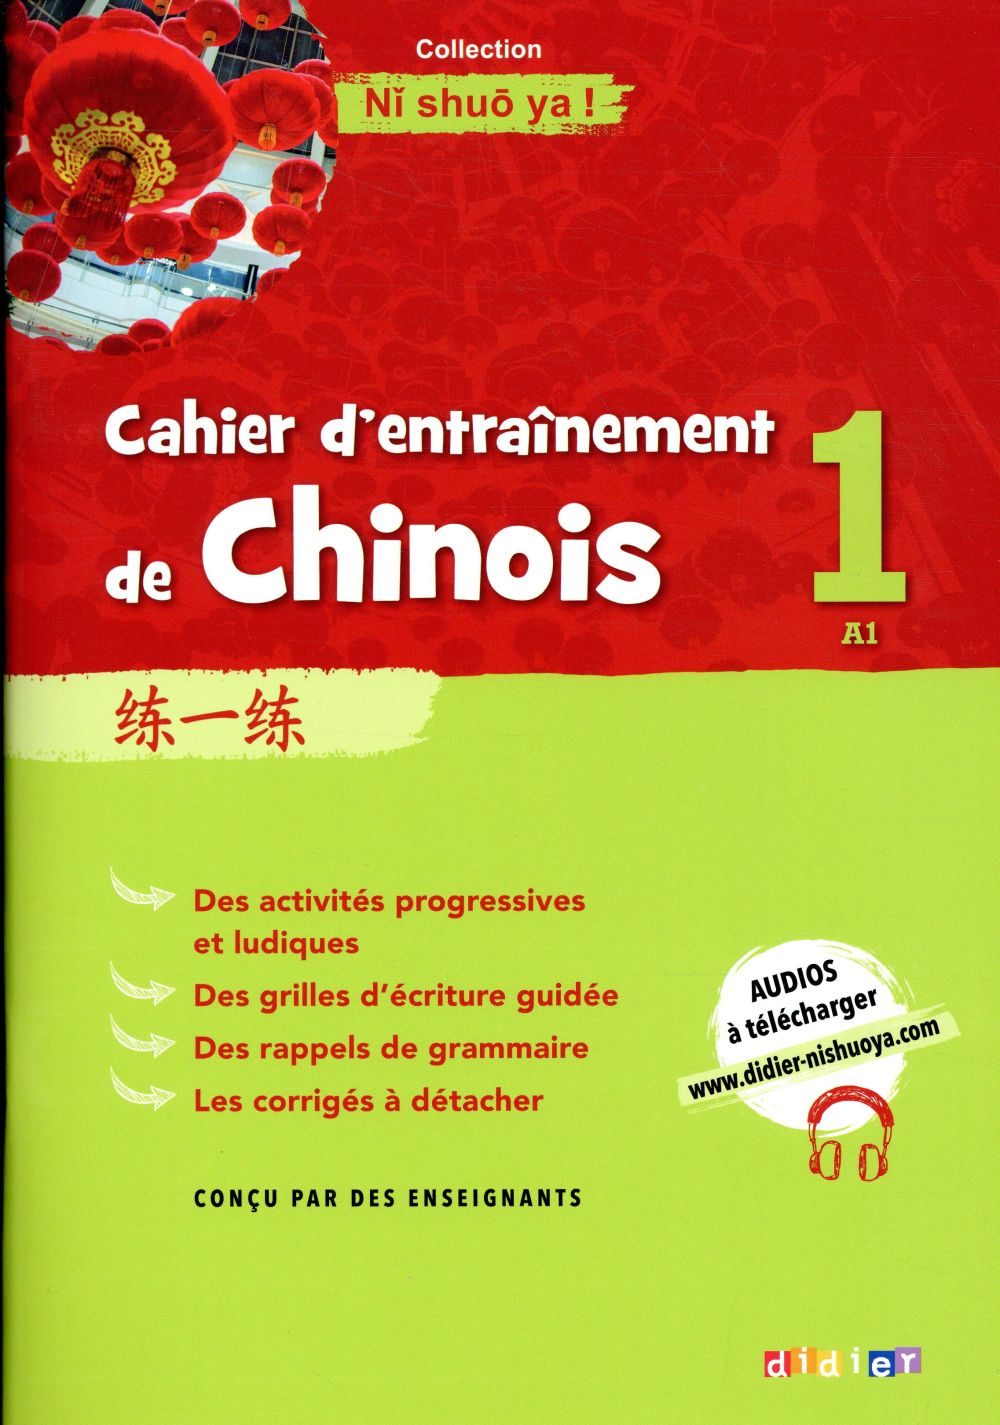 NI SHUO YA !  -  CAHIER D'ENTRAINEMENT DE CHINOIS  -  A1